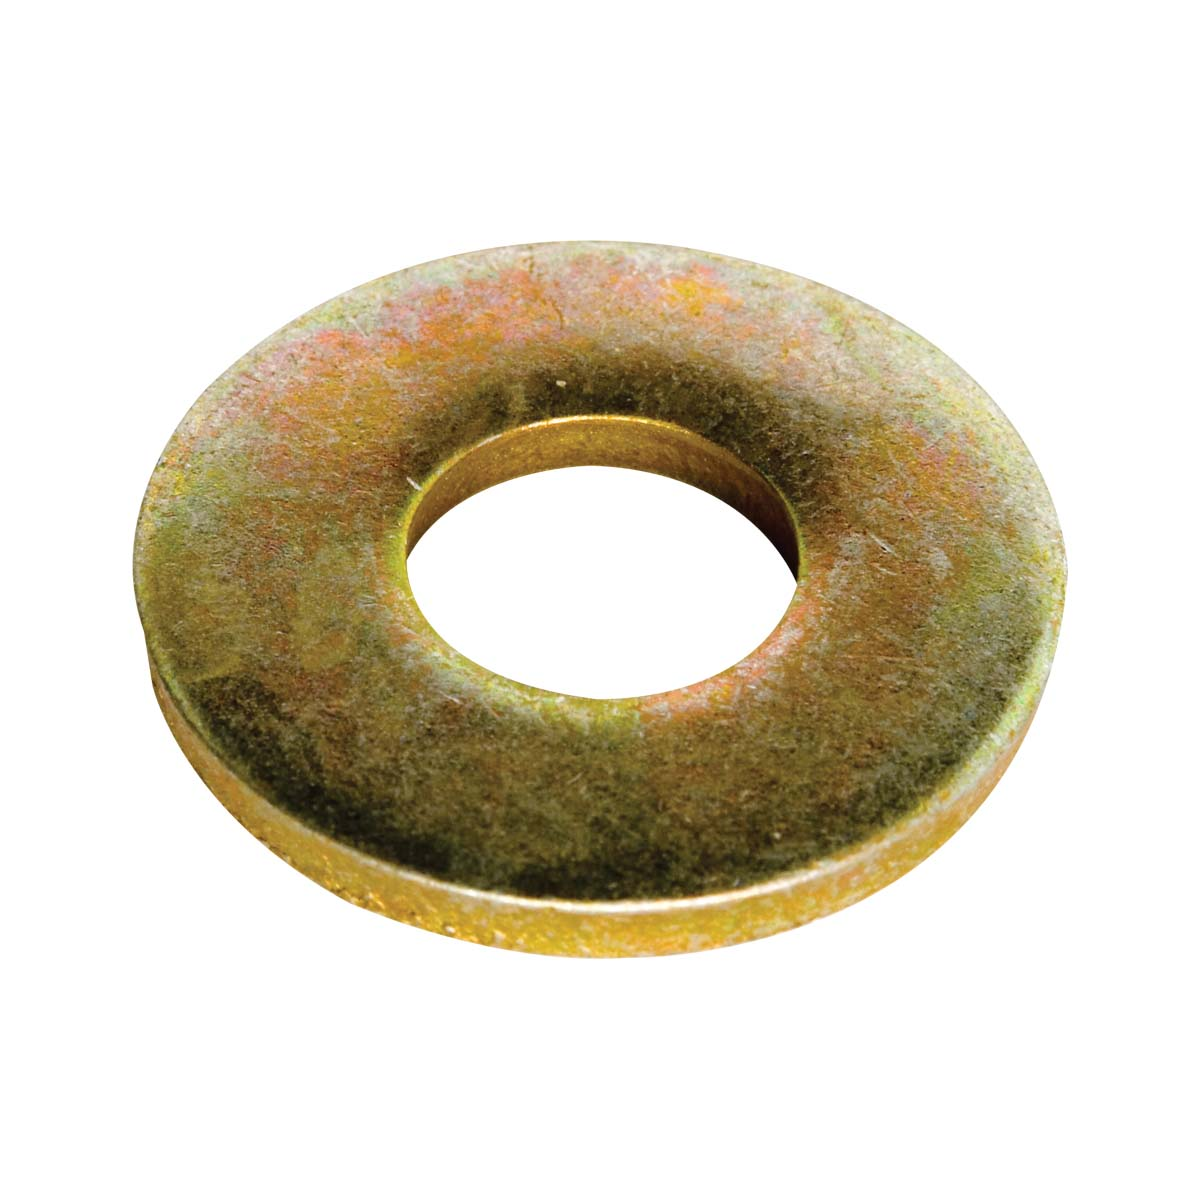 1 Quot Extra Thick Alloy Flat Washer Kimball Midwest